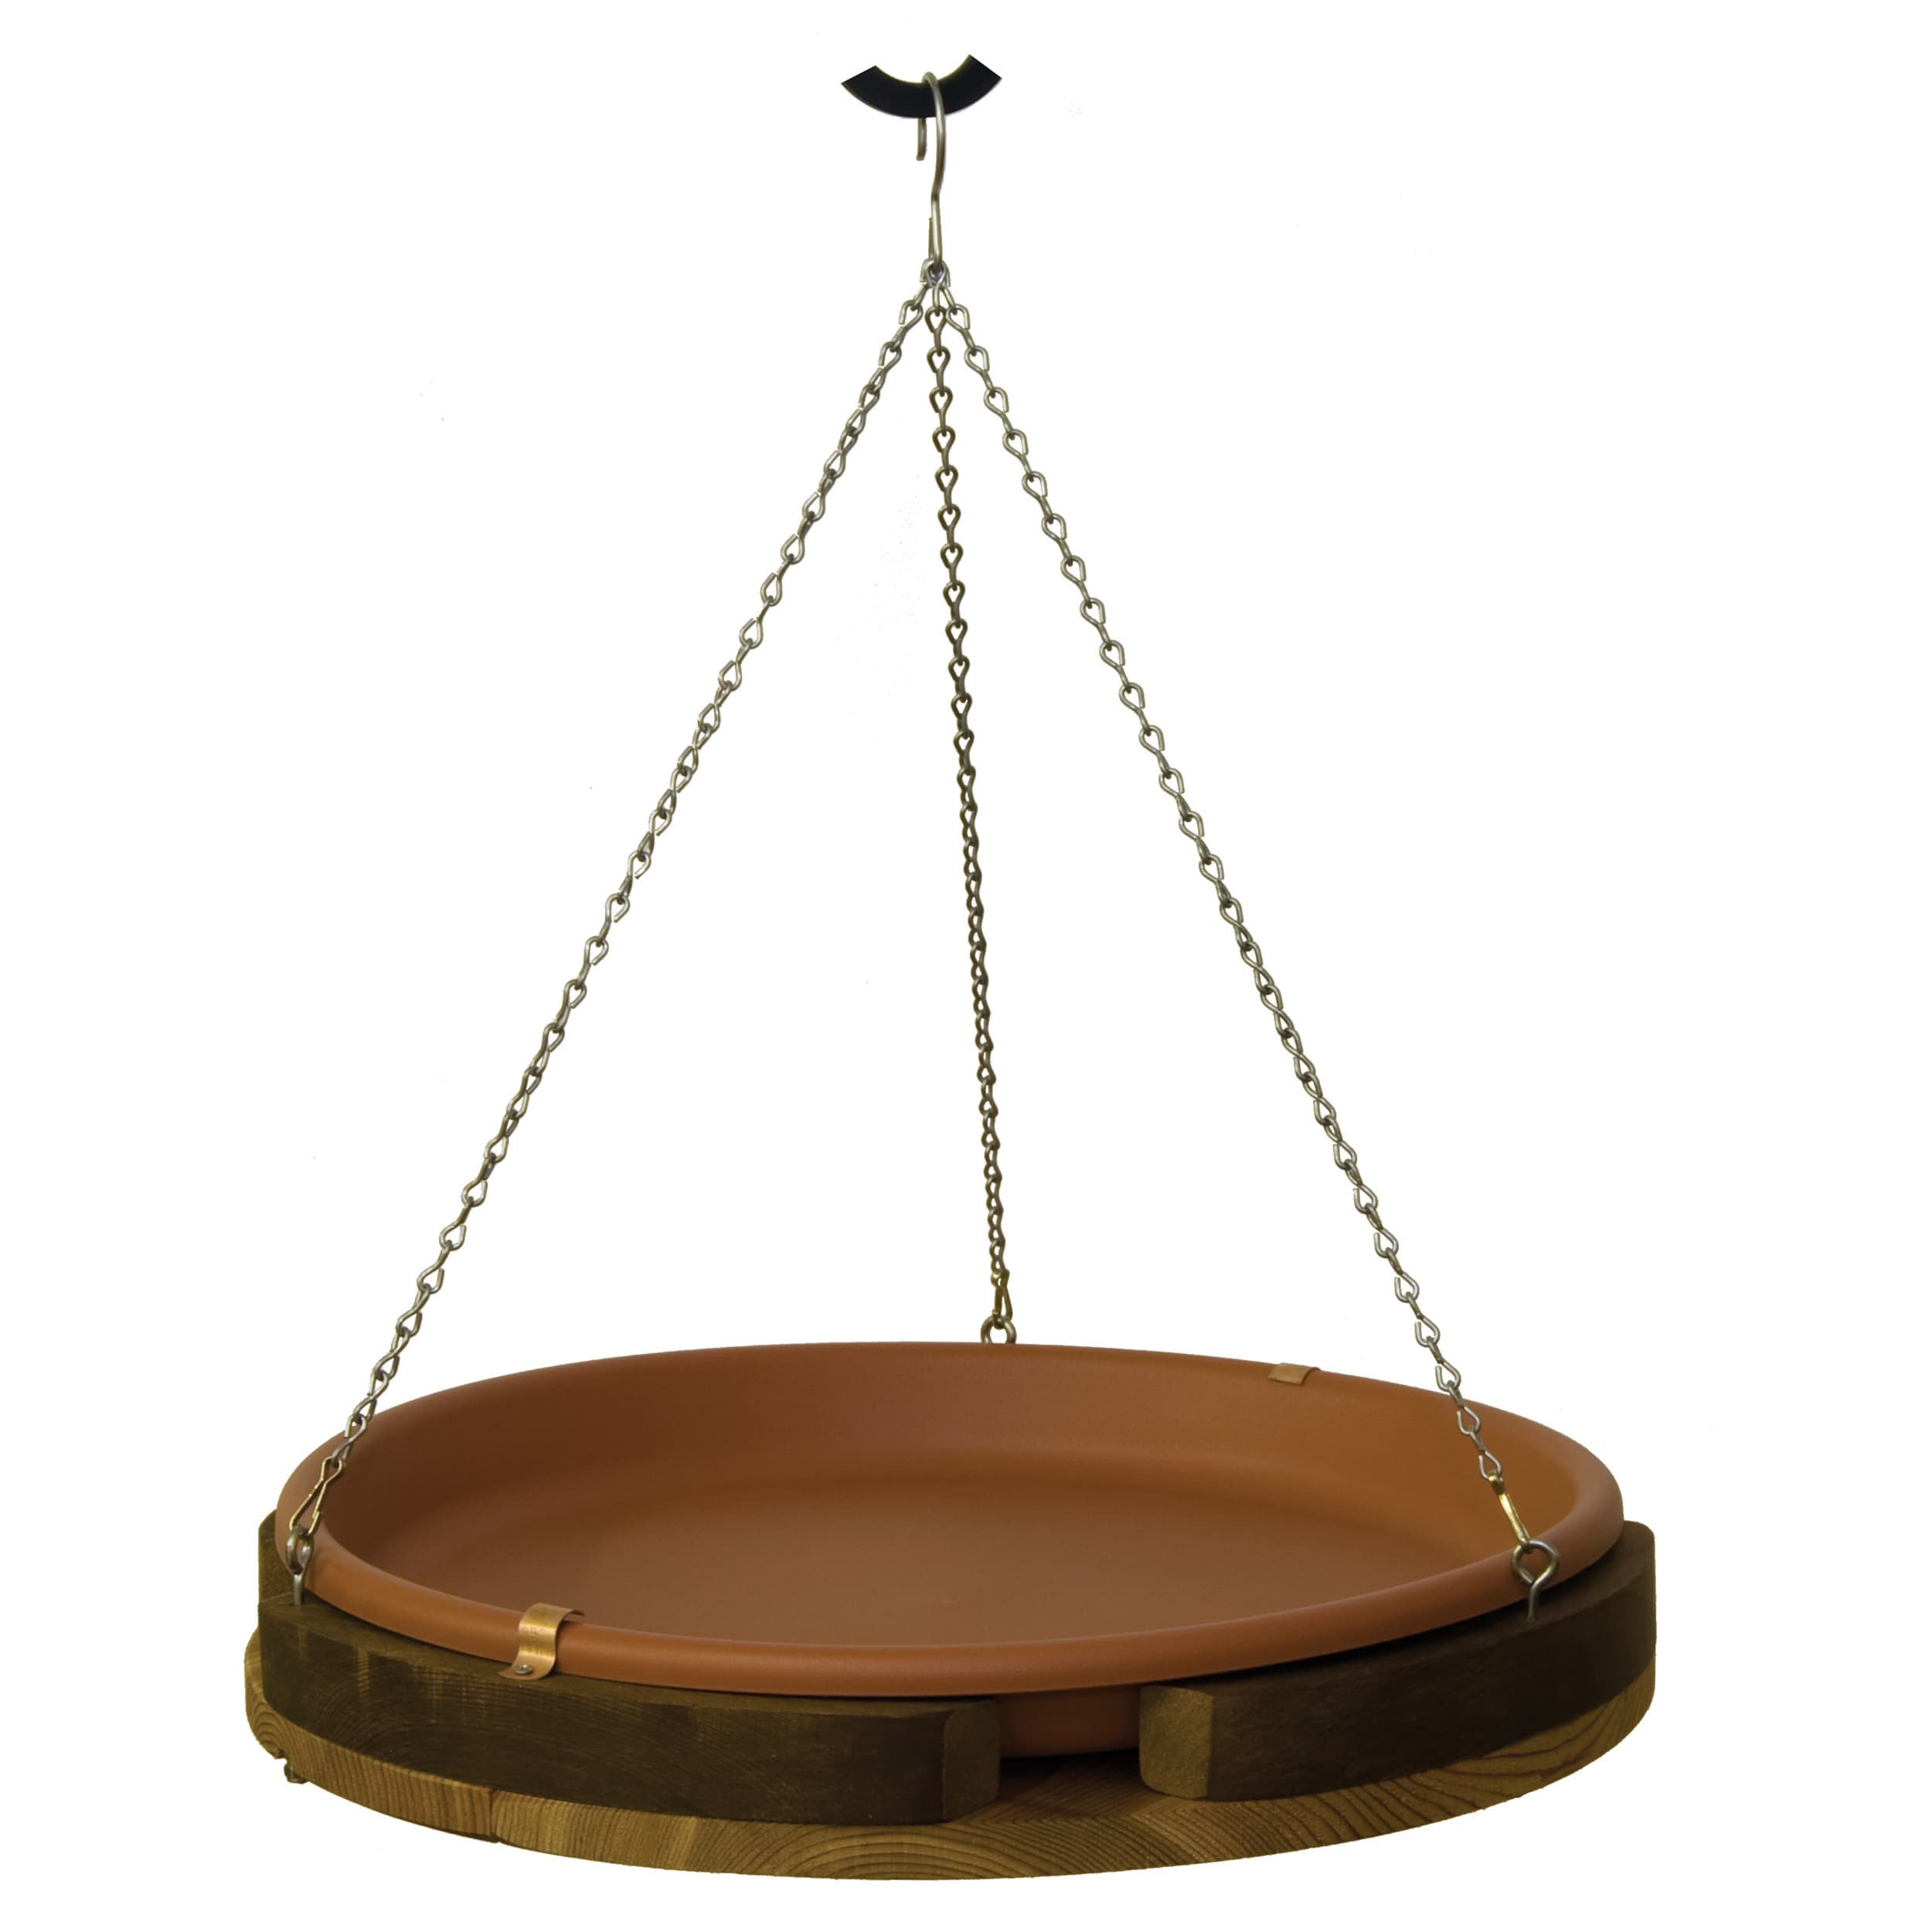 "Stovall Products 18"" Hanging Bird Bath"